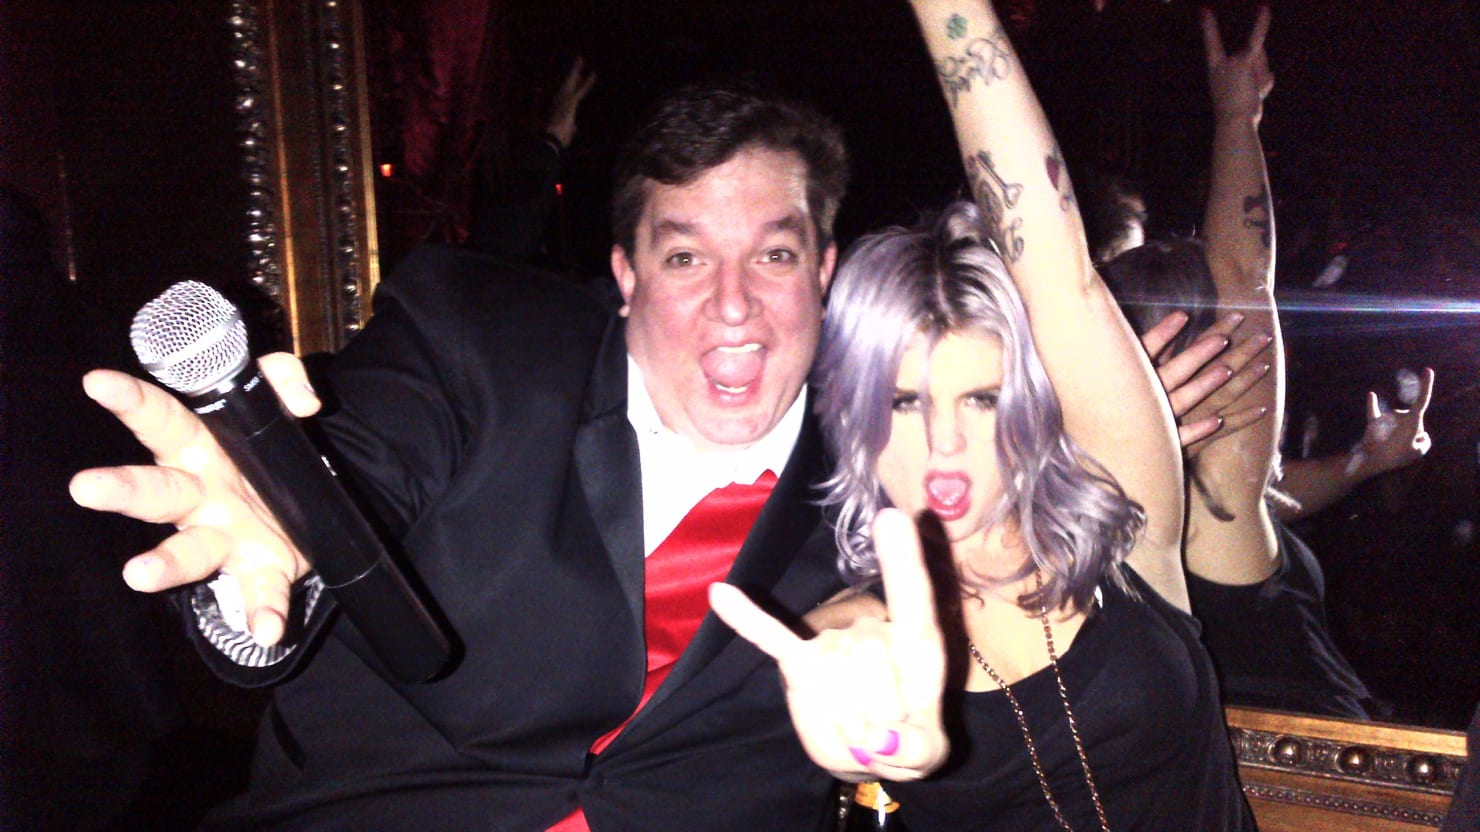 Beacher's Madhouse: Wildest Club in Los Angeles, Featuring Miley Cyrus, Bill Maher, More